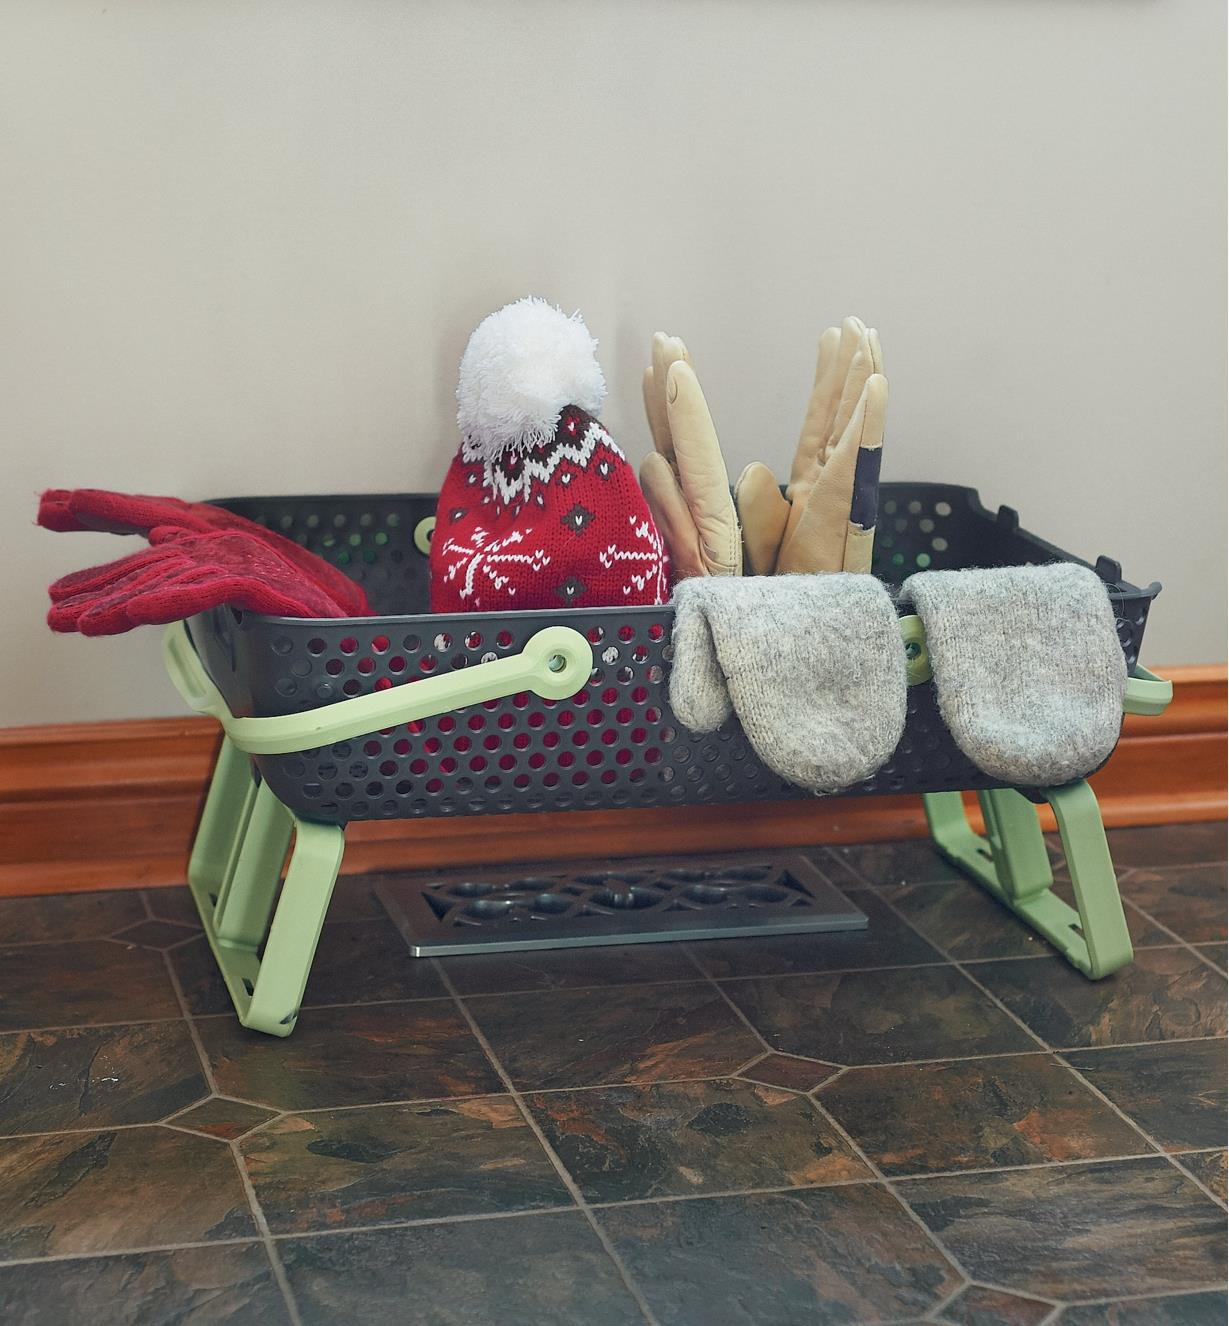 Medium Stacking Basket straddling a heat register, holding mittens and a hat